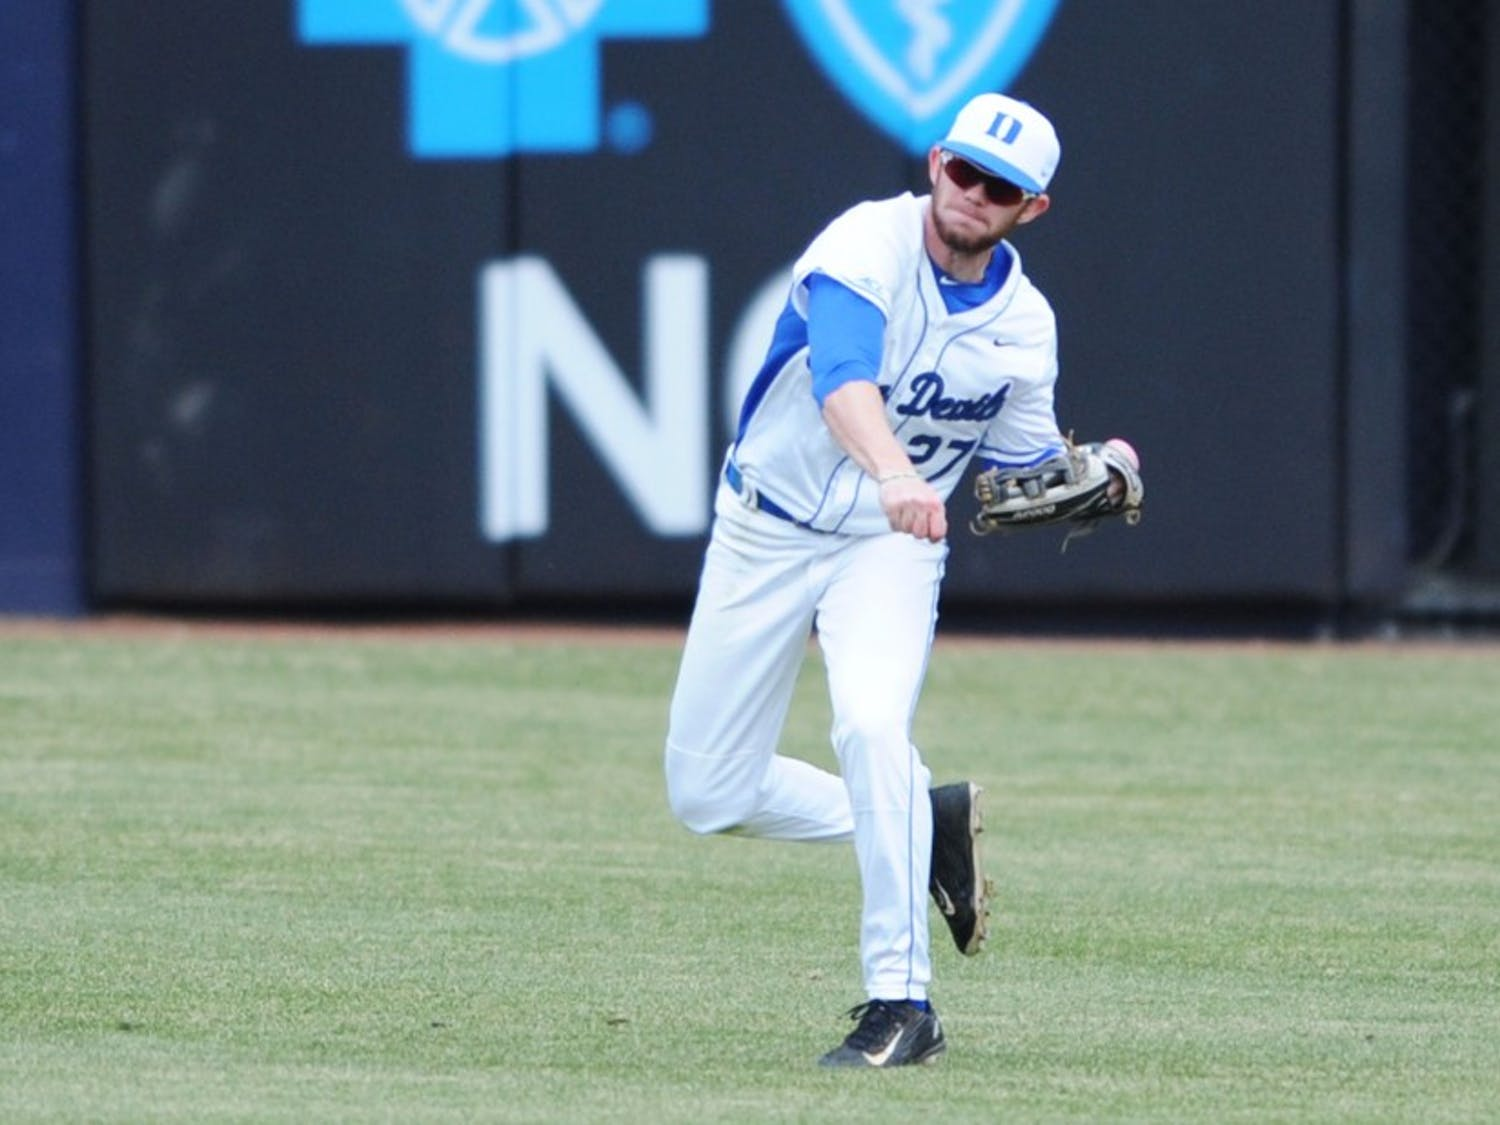 Evan Dougherty delivered the game-winning hit for the Blue Devils Saturday, then drew a walk in the bottom of the ninth inning Sunday to set up Griffin Conine's walk-off double.